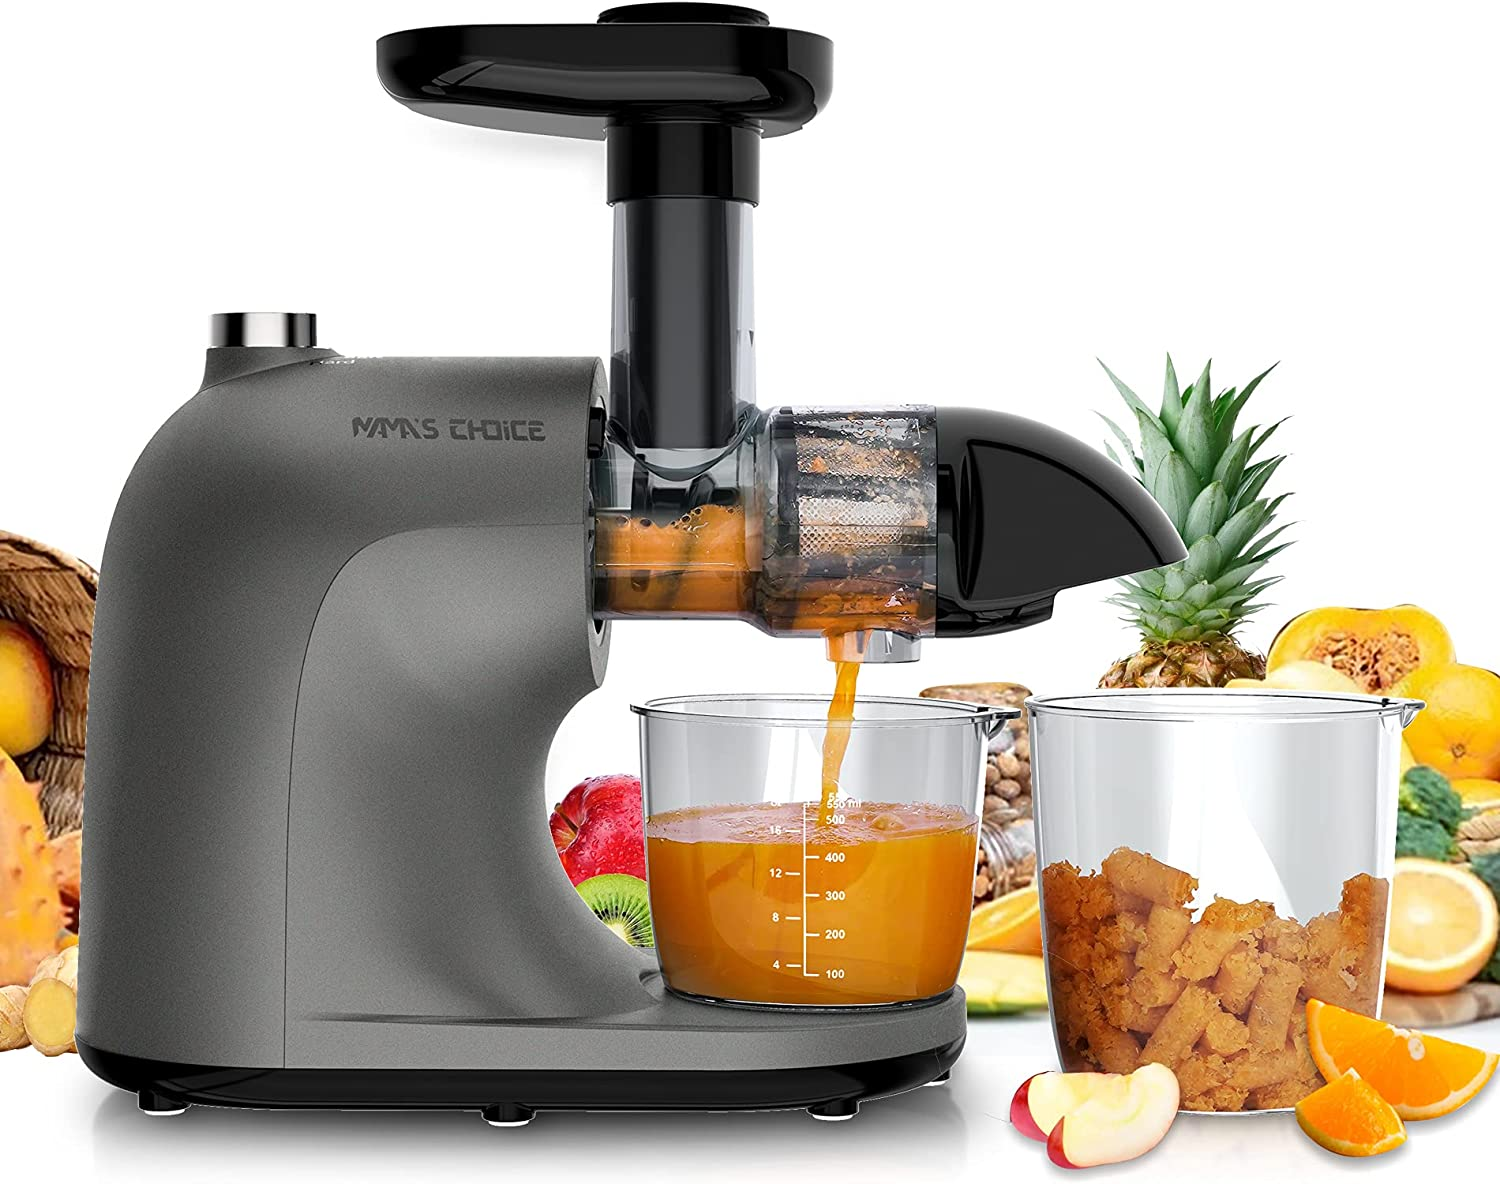 Juice Extractor, Slow Masticating Juicer, Cold Press Juicer Machine with Quiet Motor & Hard, Soft, Reverse Functions, Higher Juicer Yield & Drier Pulp, BPA-Free, Recipes, Brush, MAMA'S CHOICE MMC2001